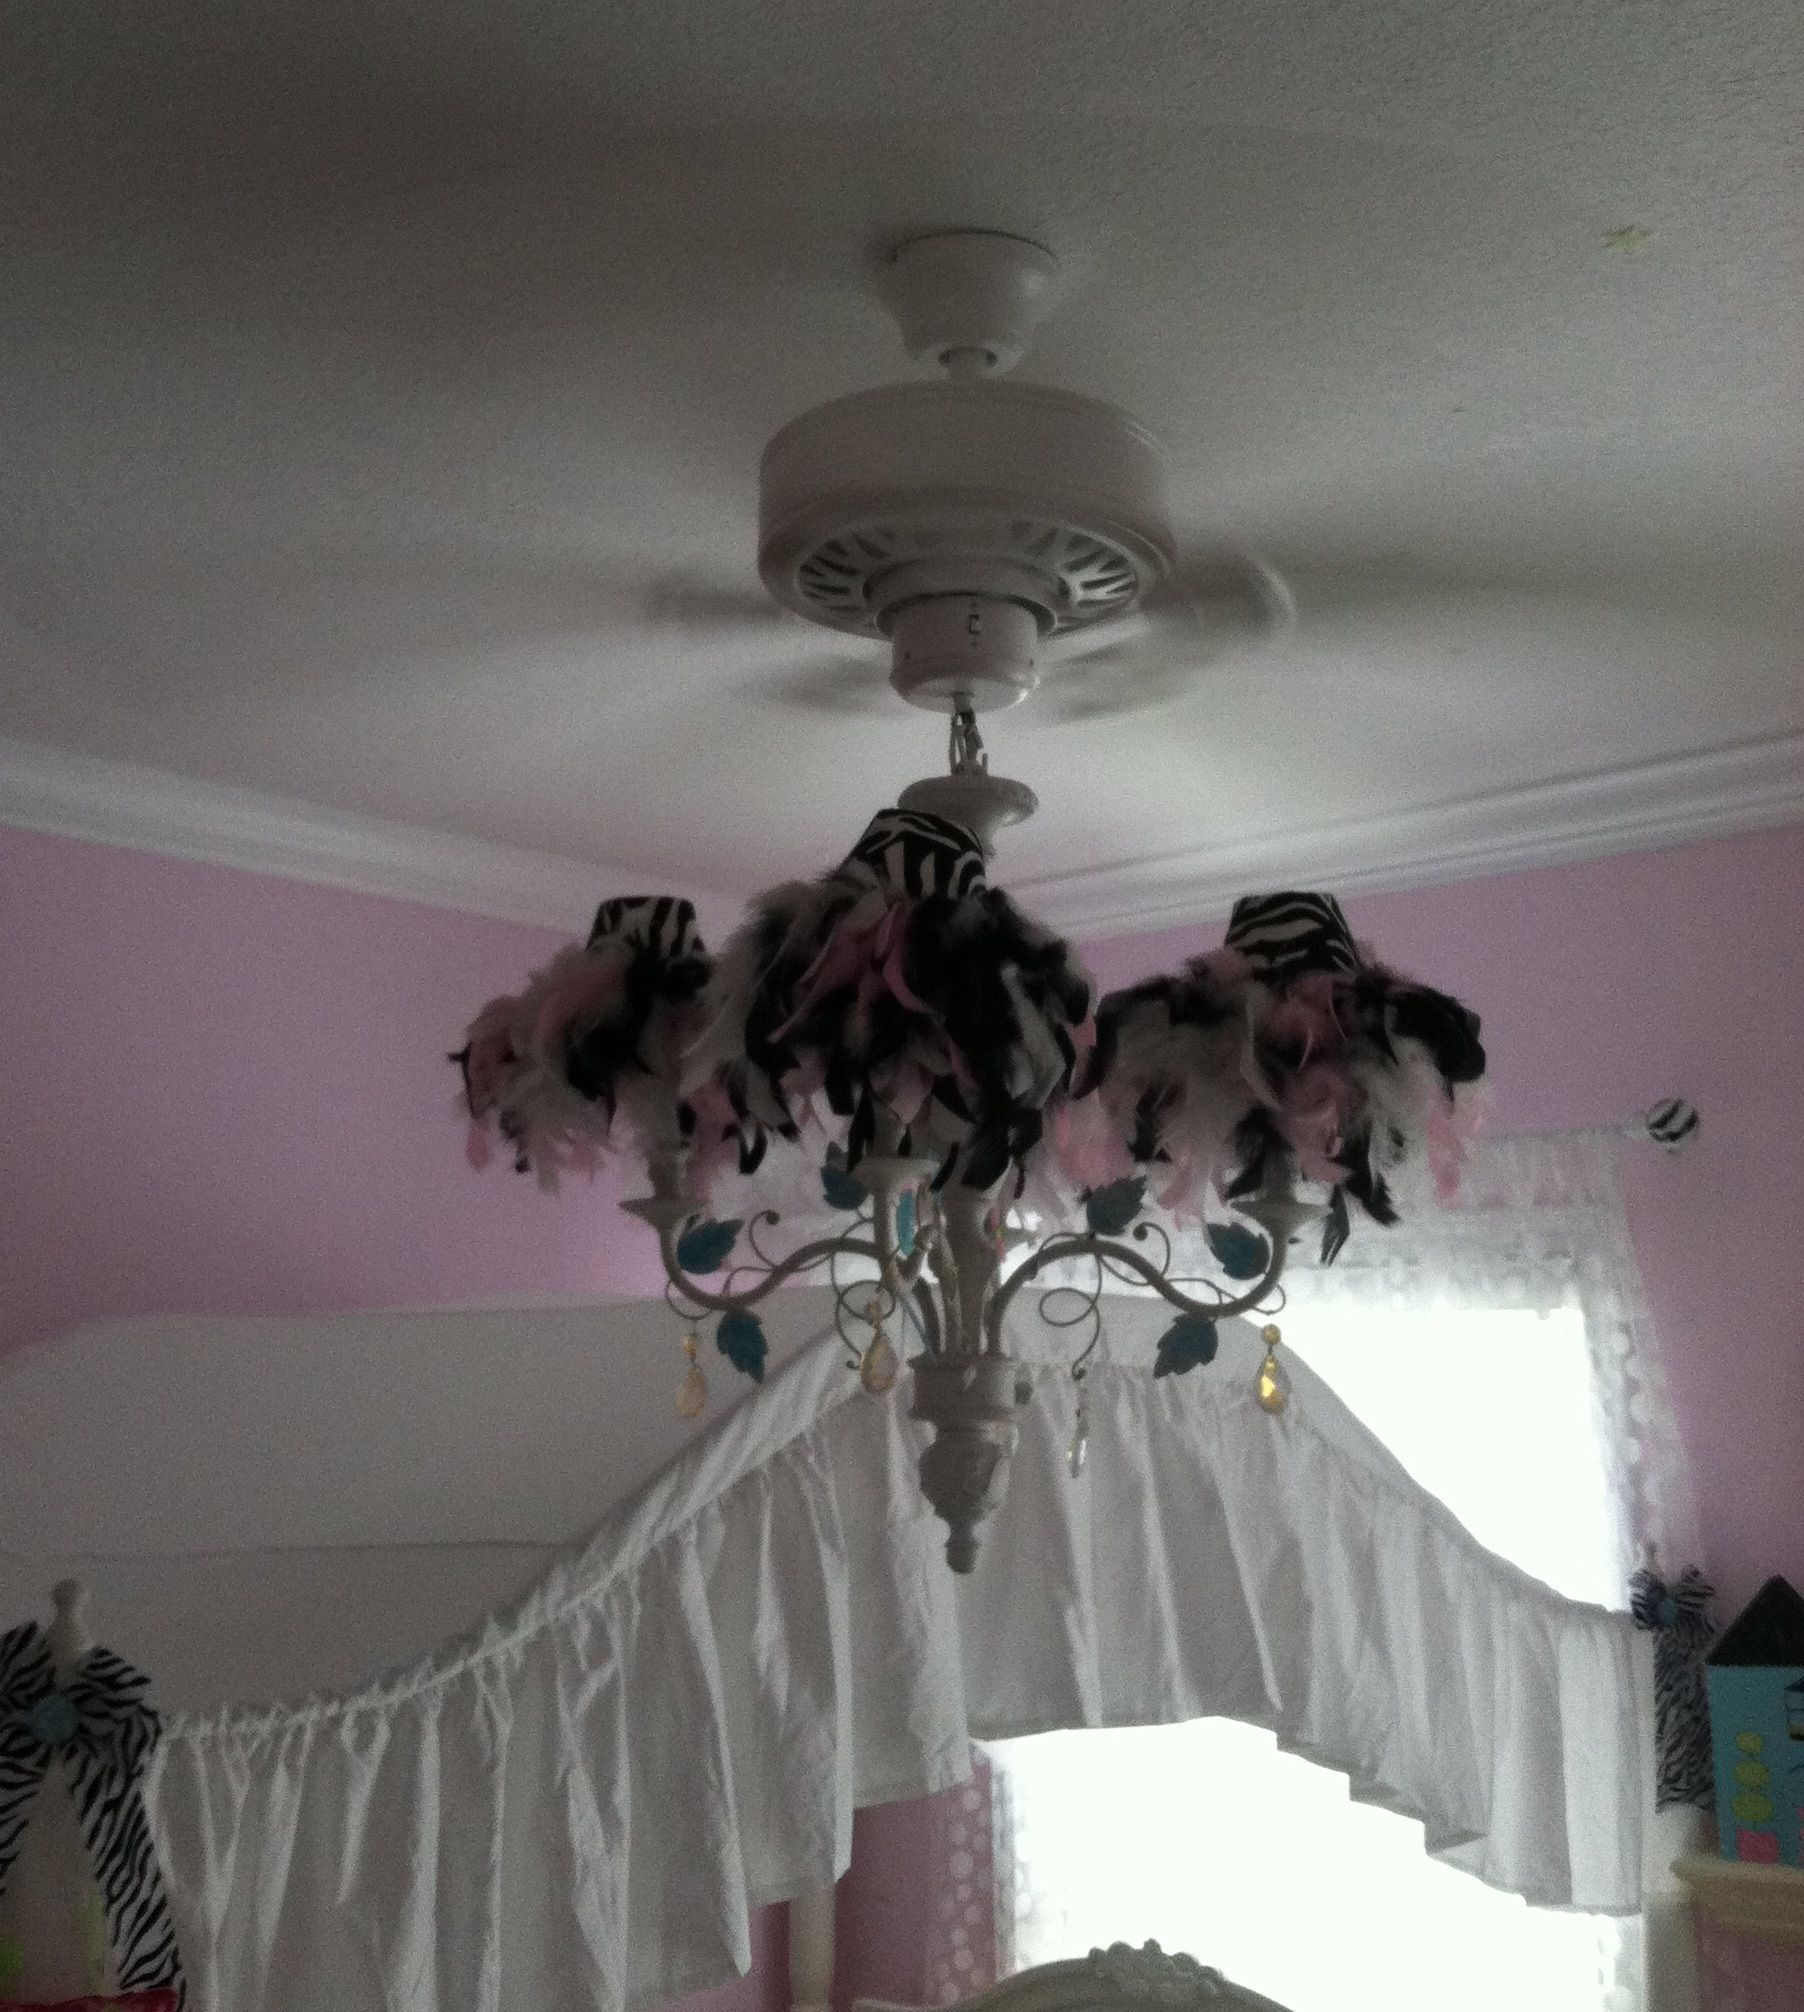 Chandelier ceiling fan diy zebra feather boa little girls room ...